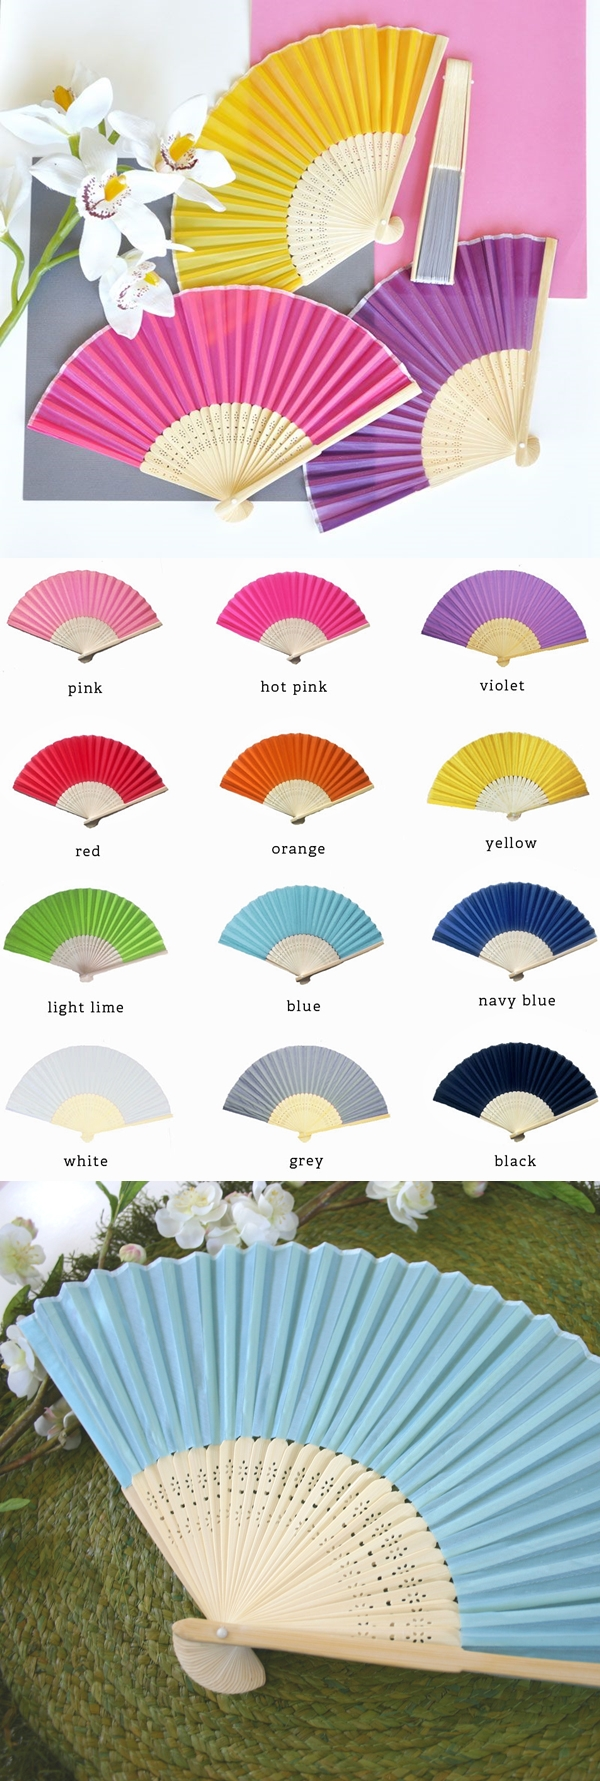 Vibrantly-Colored Silk Fans with Bamboo Stems (12 Colors)